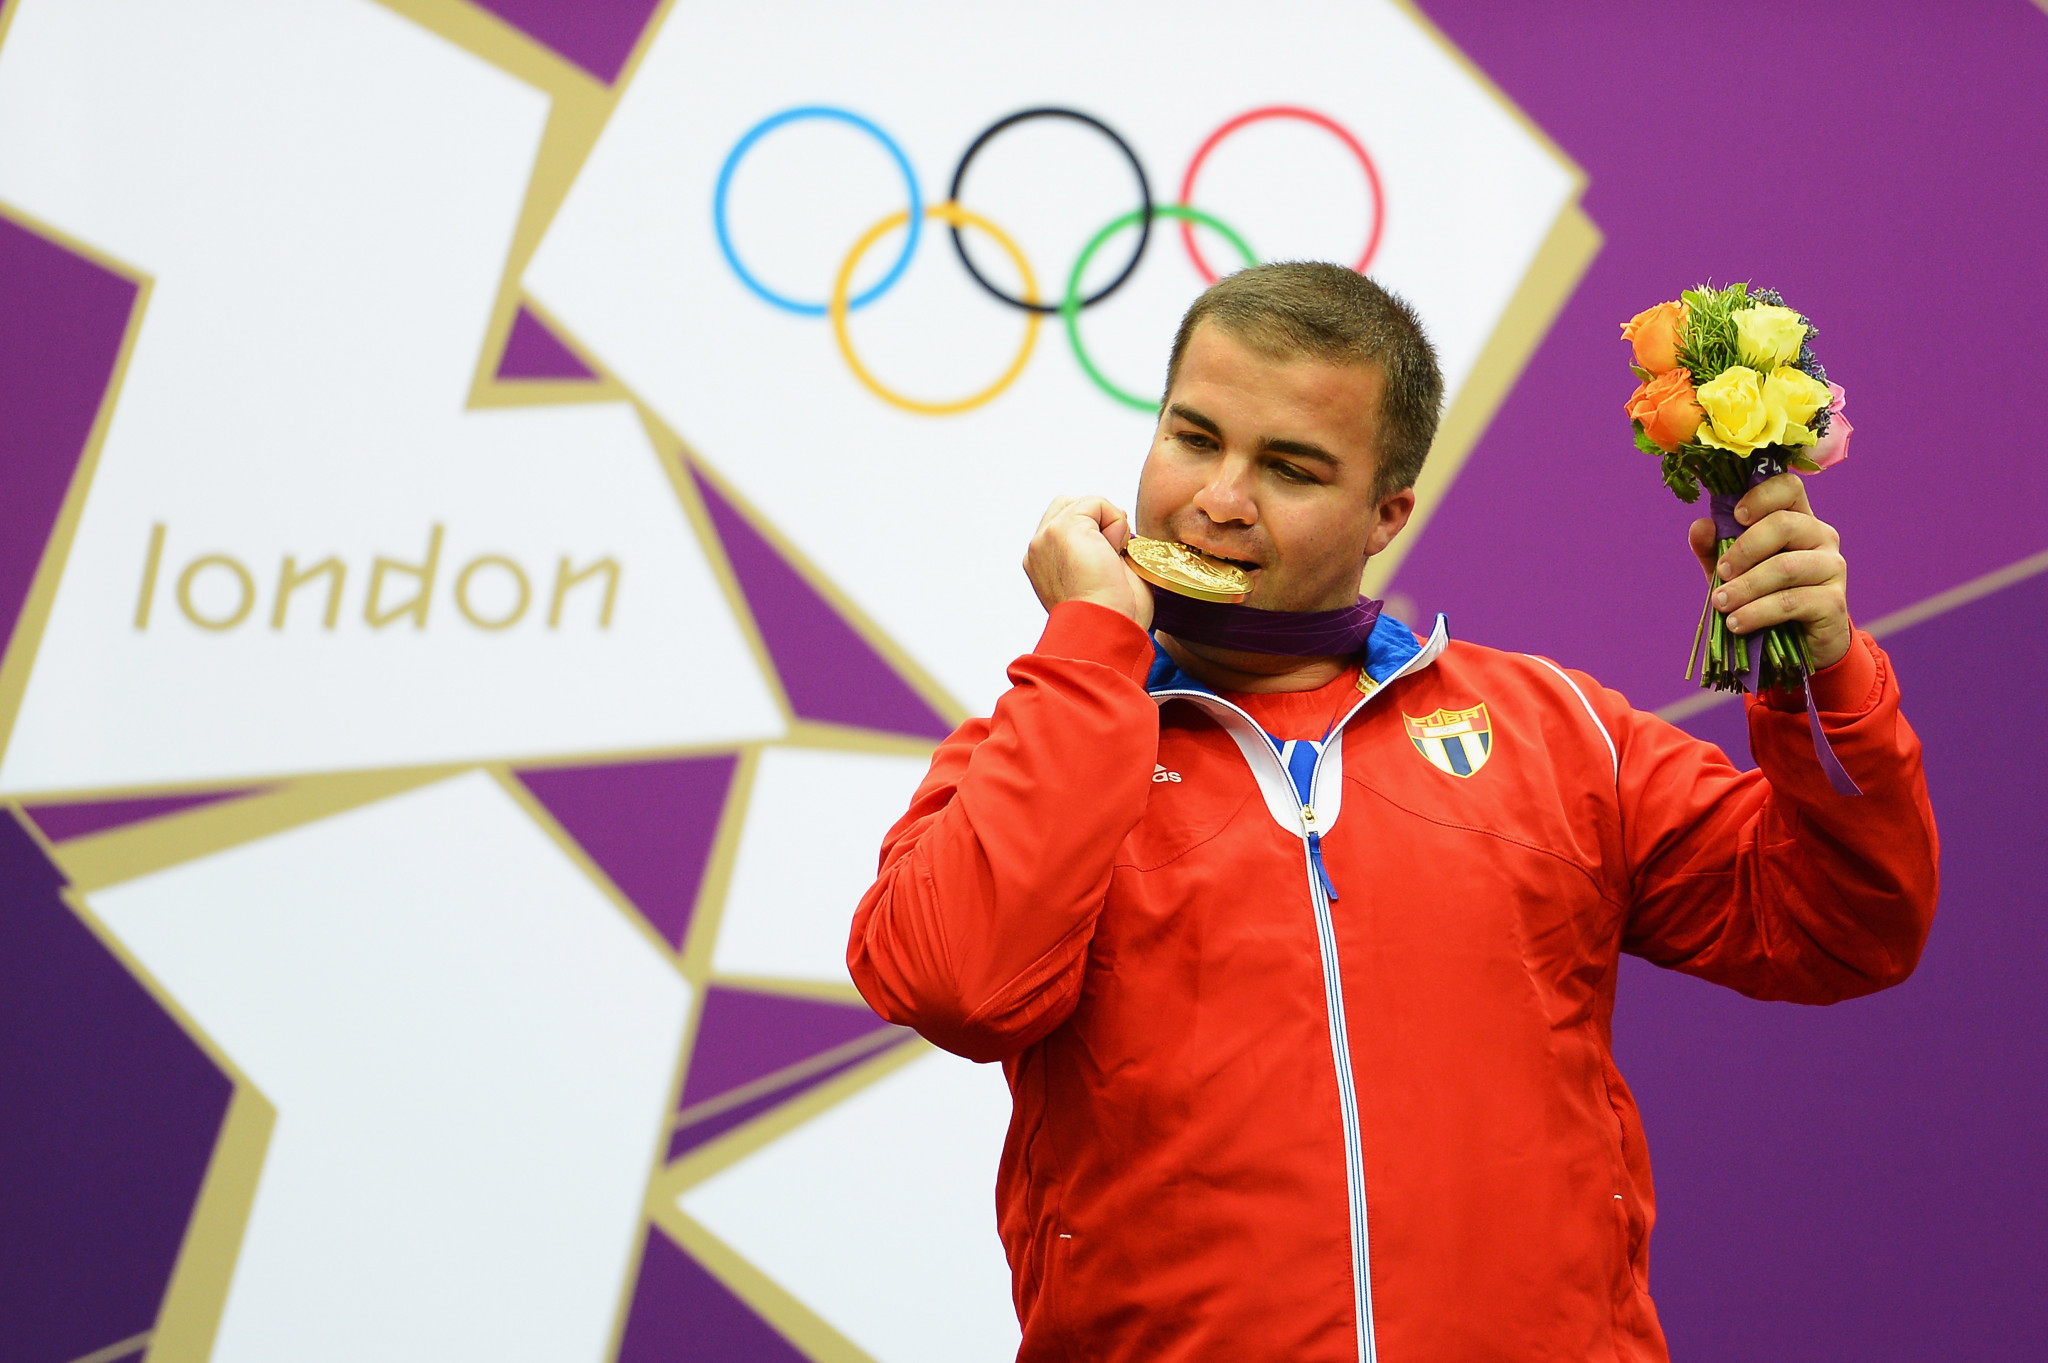 Cuba's Leuris Pupo won the gold medal in the men's 25 metre rapid fire pistol at London 2012 on his fourth Olympic appearance having previously never finished higher than seventh ©Getty Images